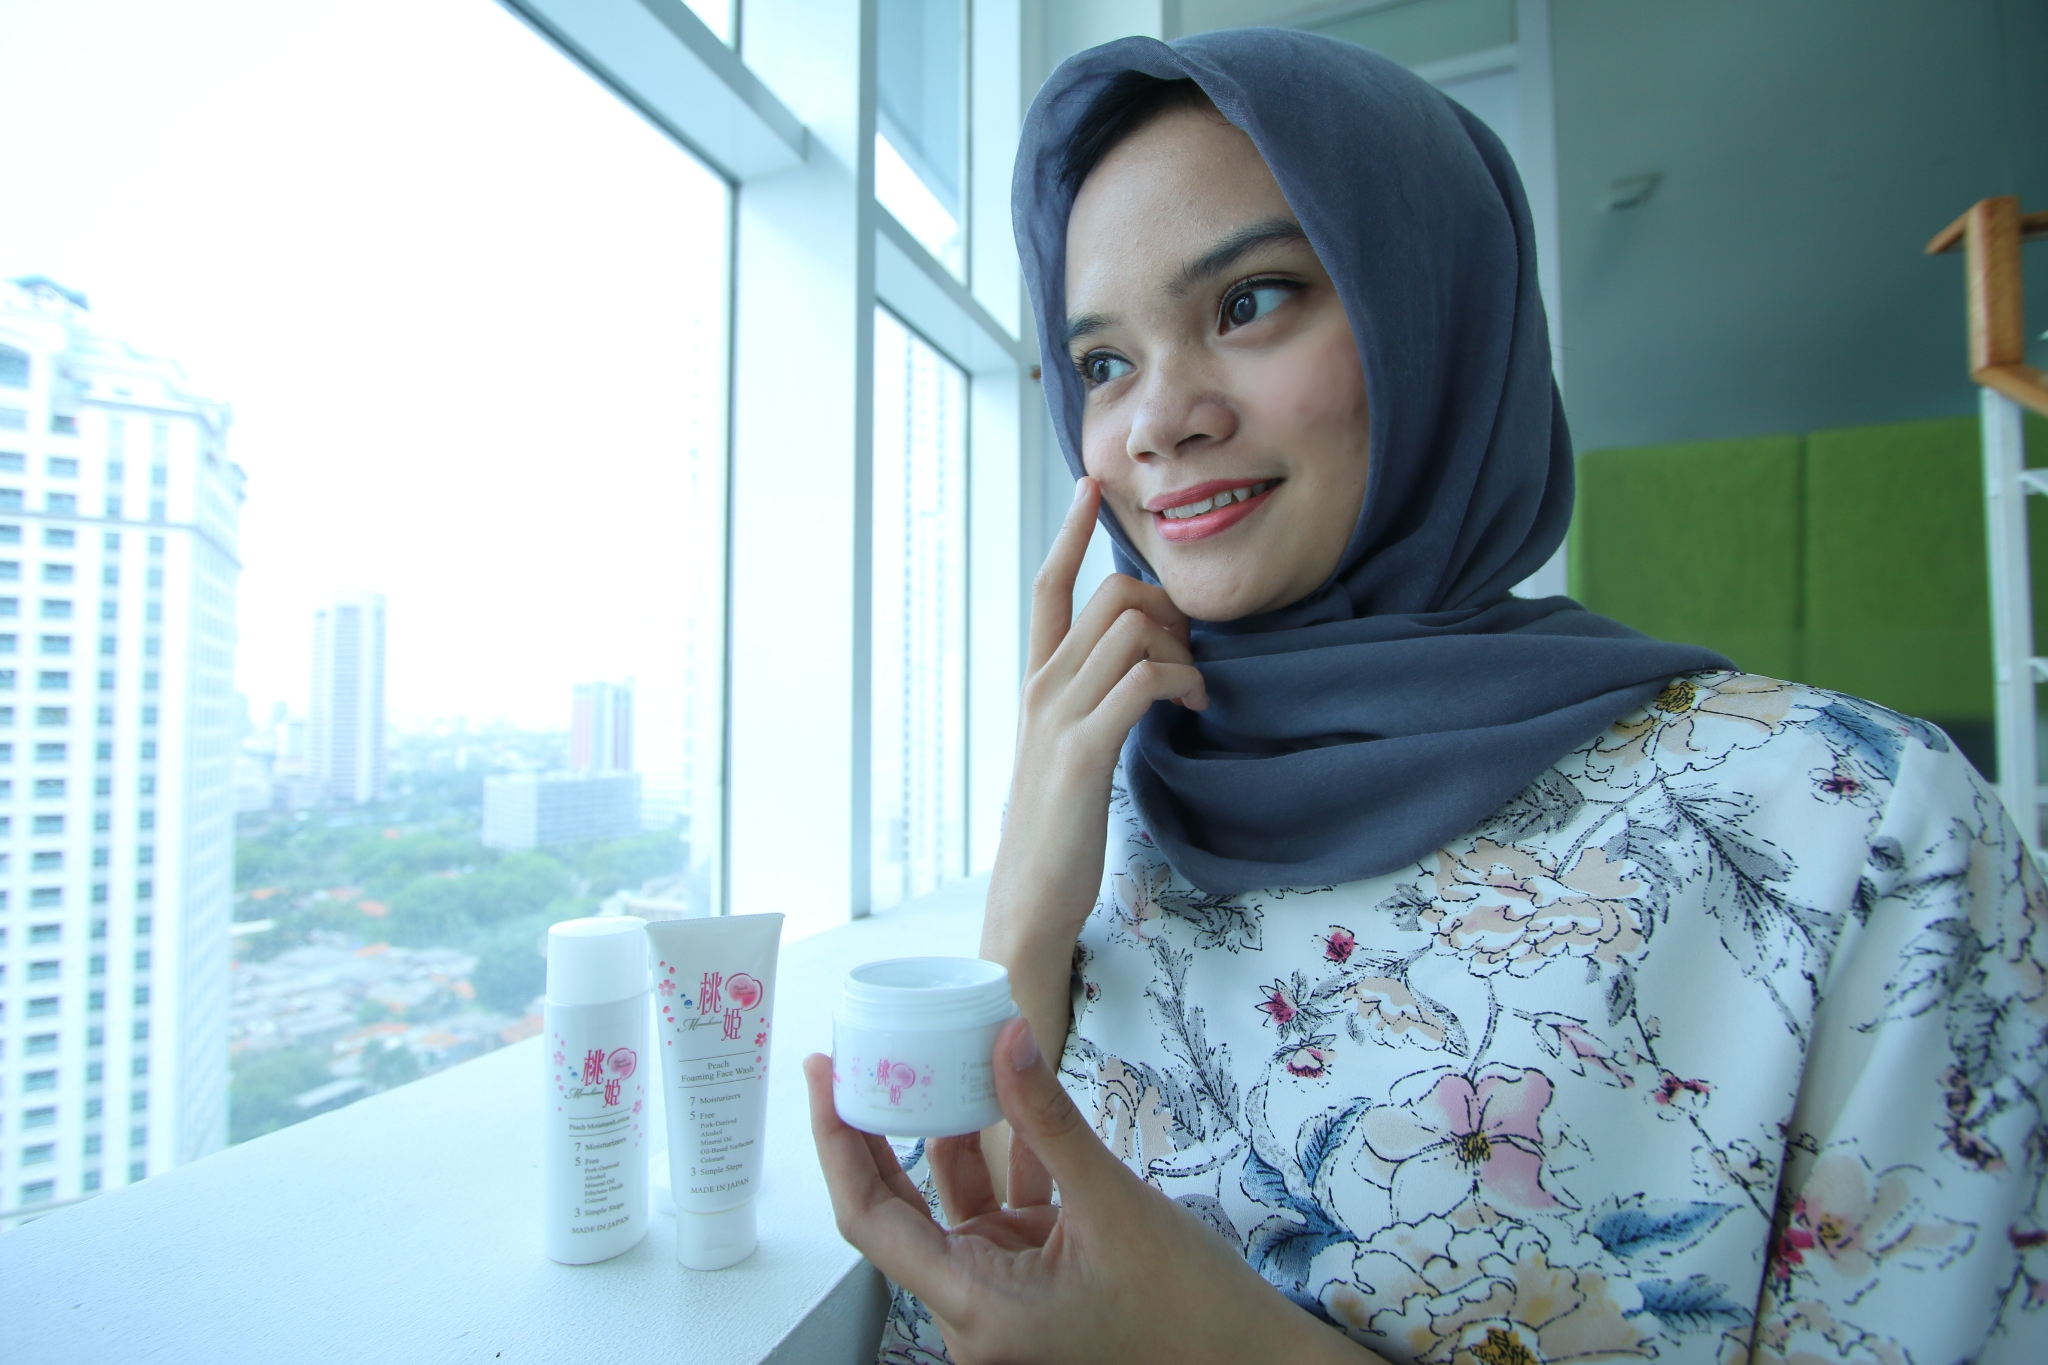 Product review - Japanese Halal Skincare